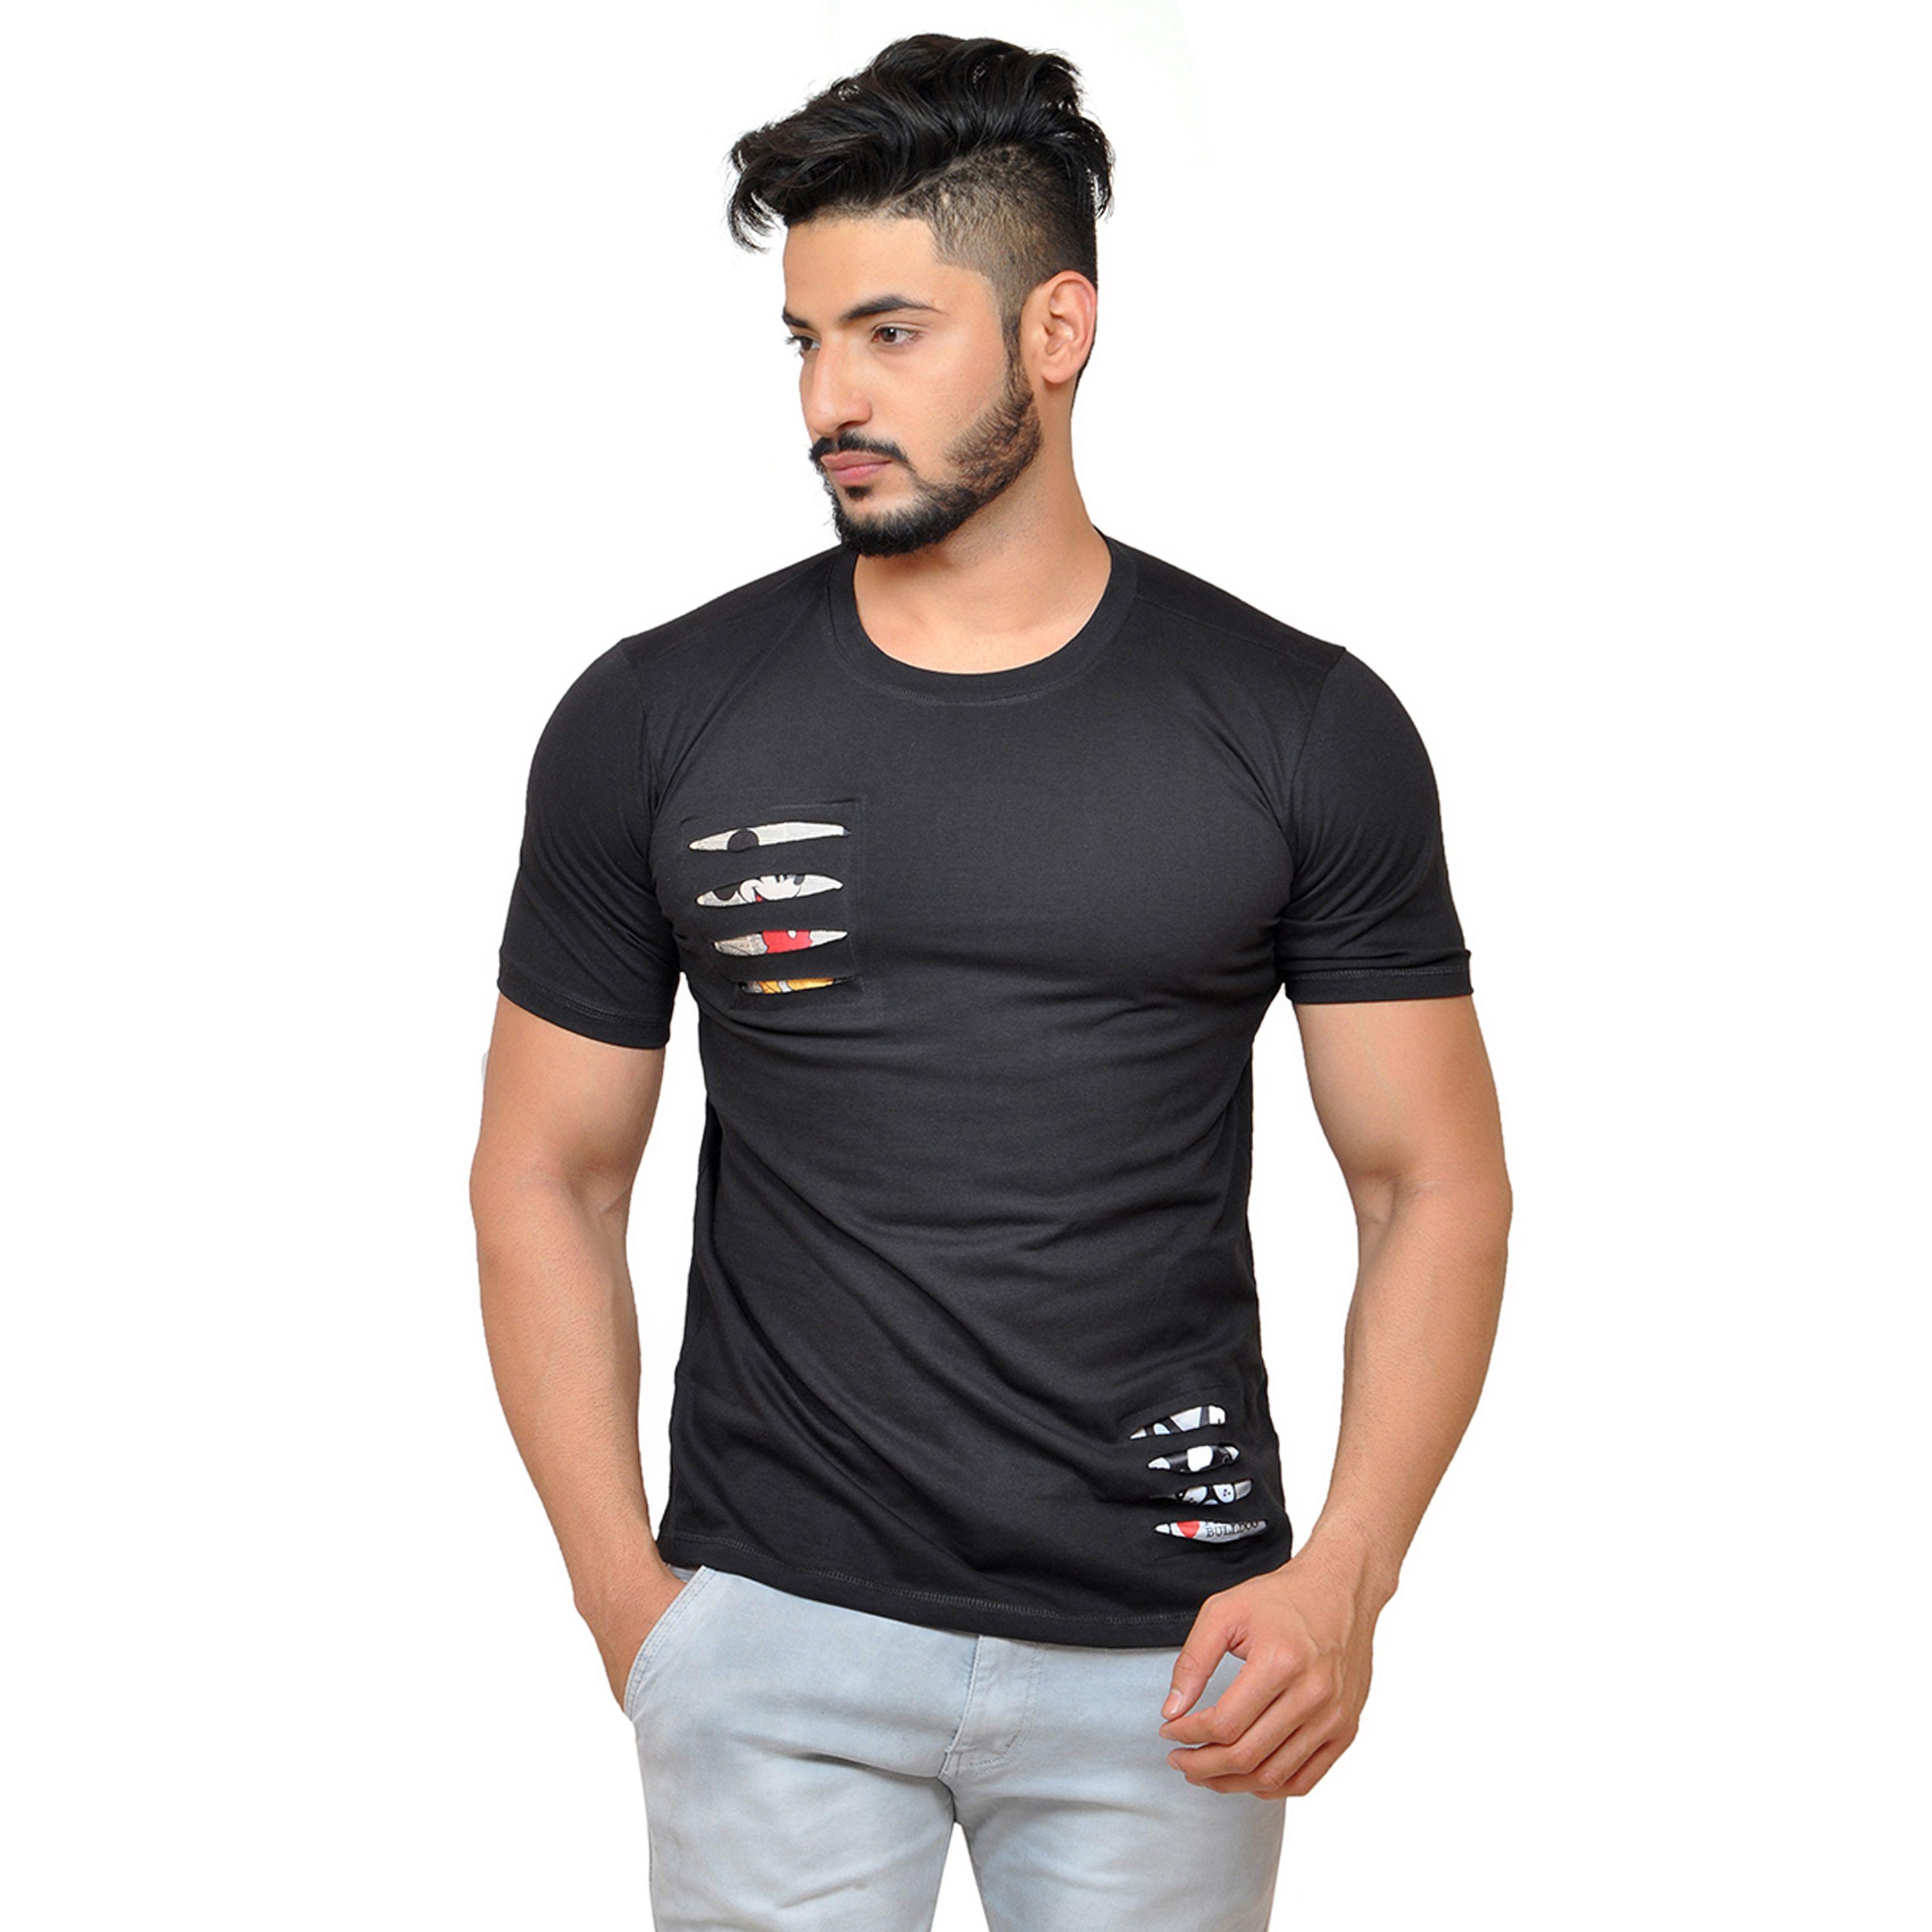 Yuvraah Black Round T-Shirt Pack of 1